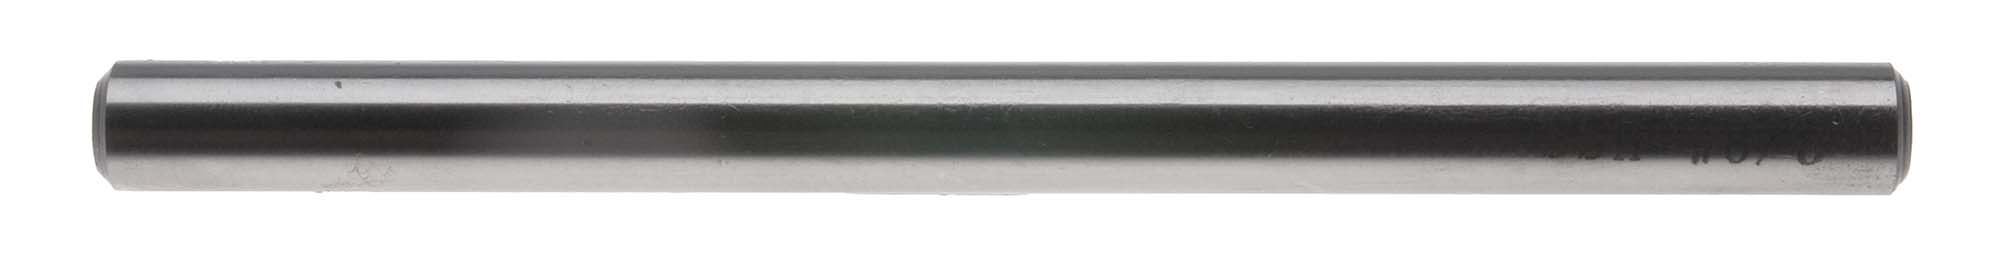 "#78 (.0160"") Jobber Length Drill Blank , High Speed Steel"